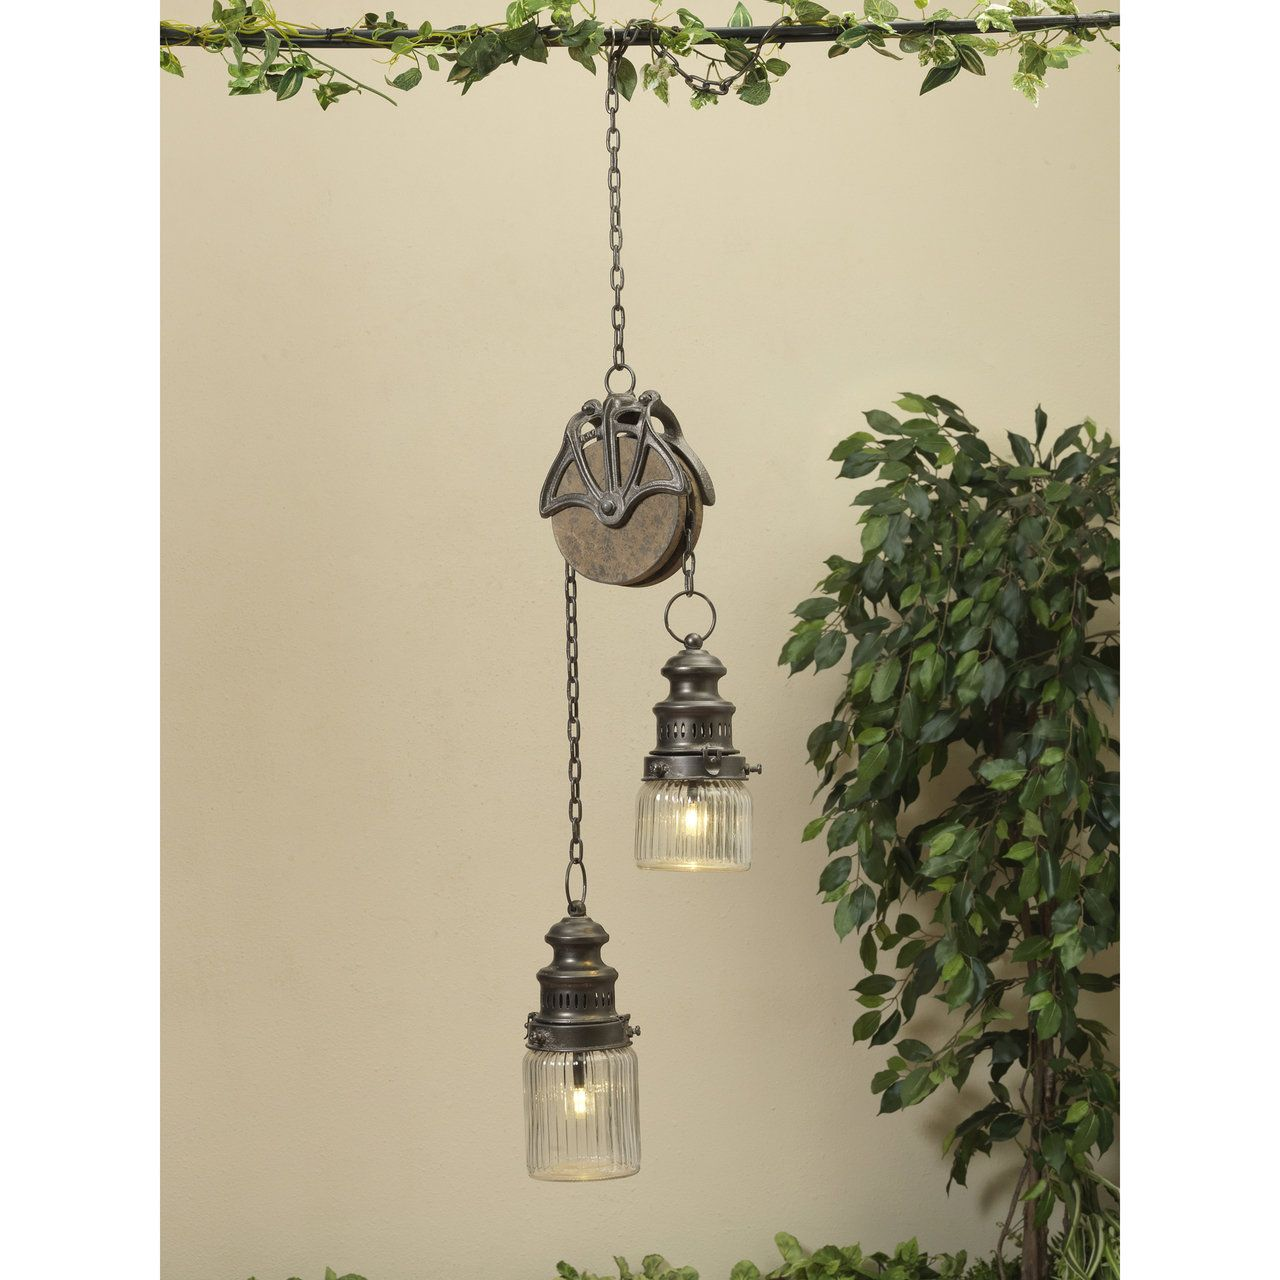 47 battery operated lighted metal and glass pulley chain